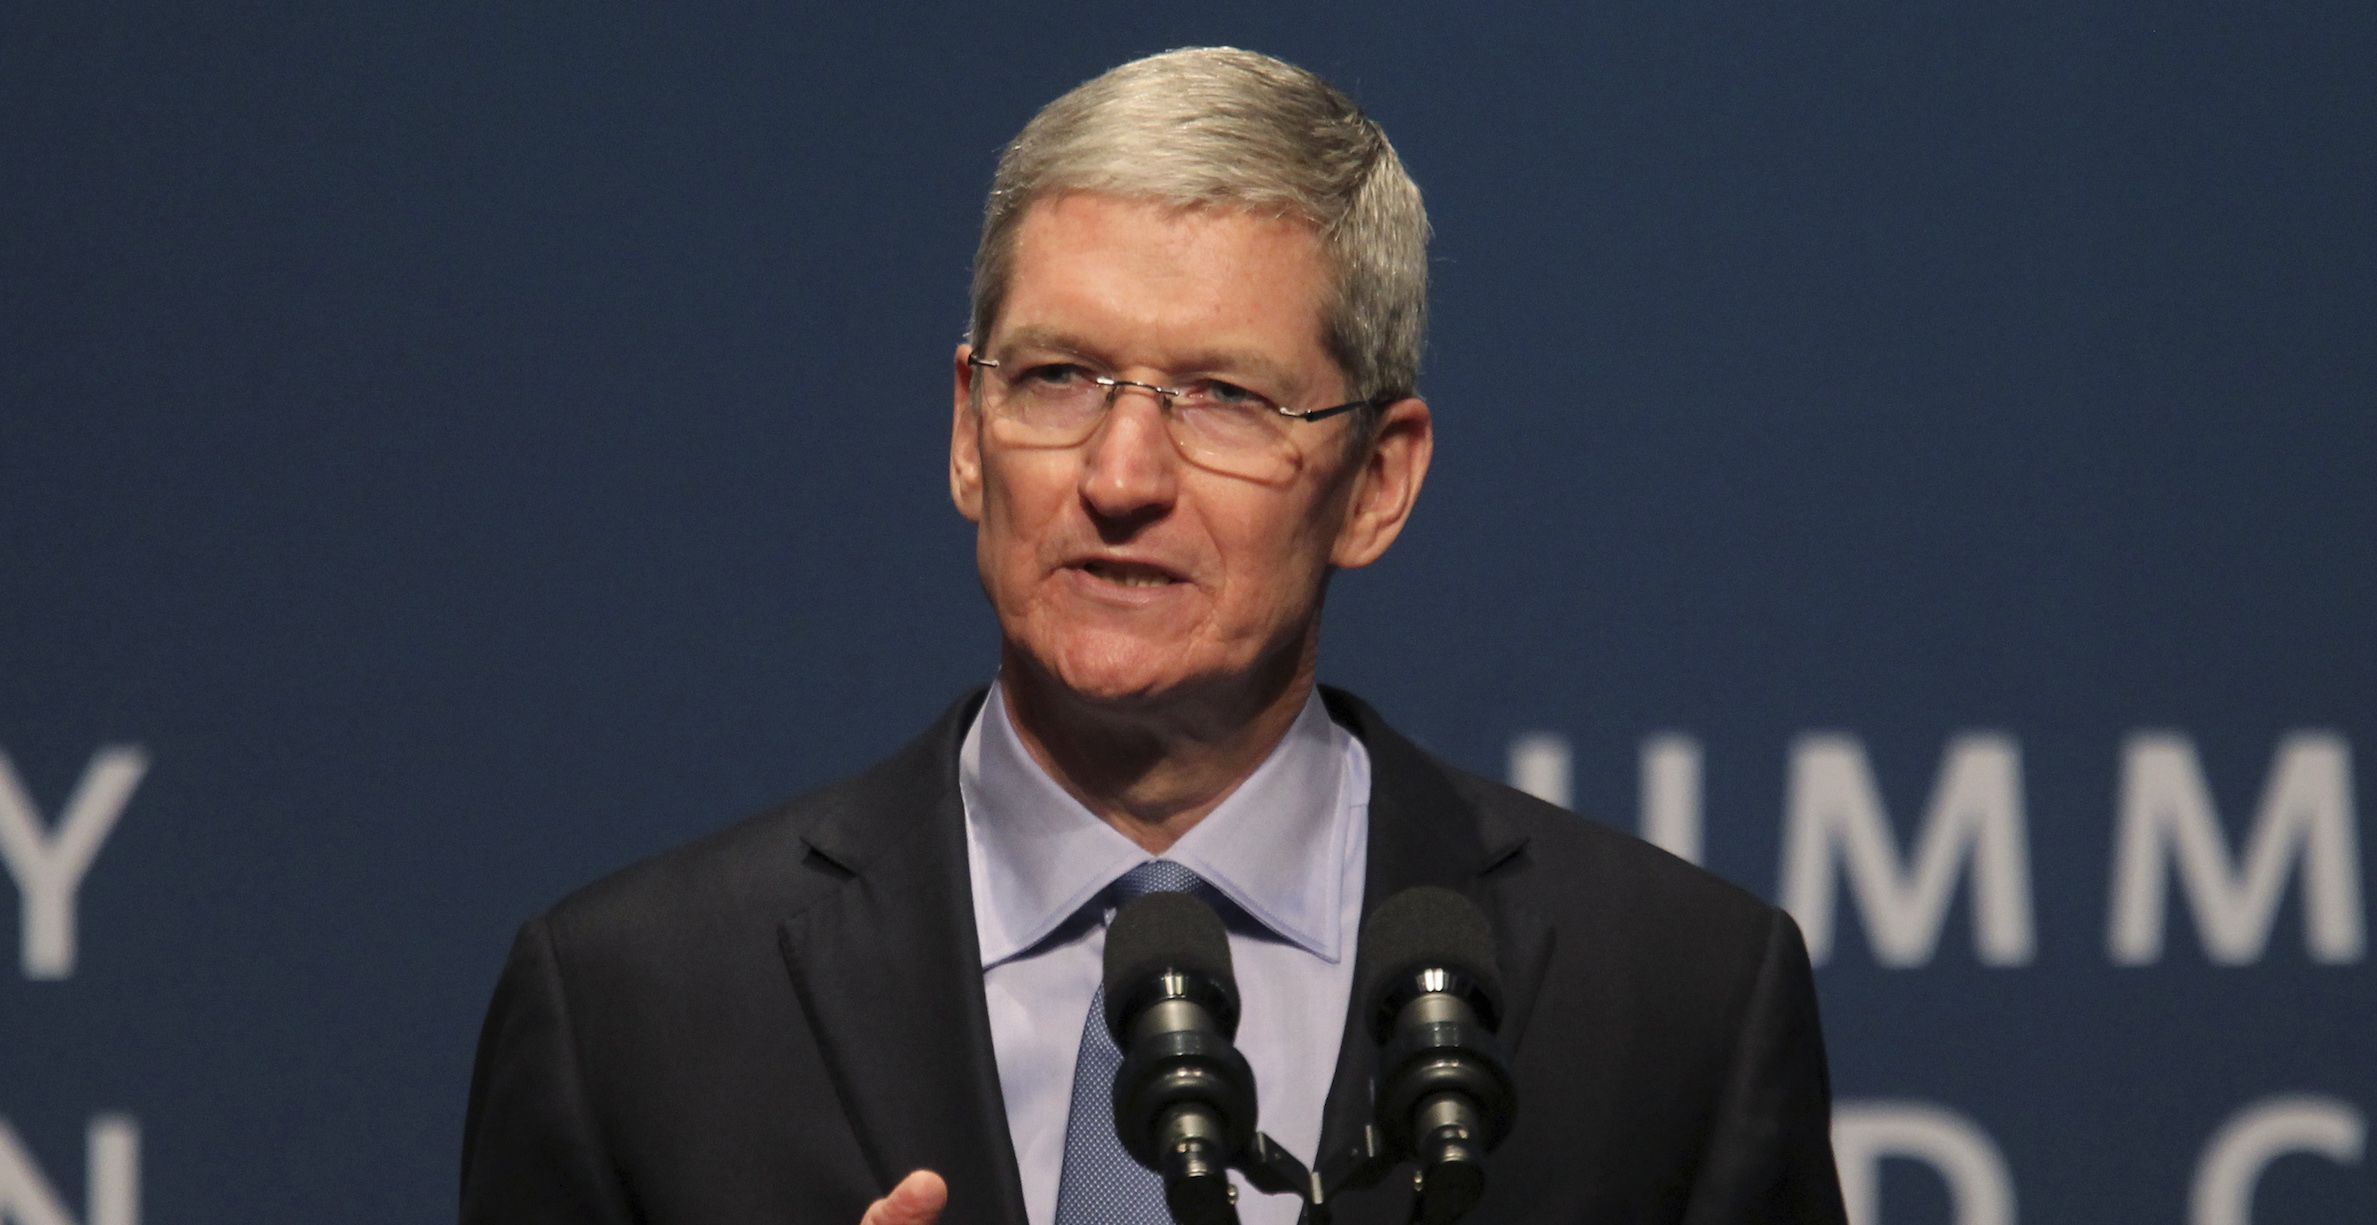 Apple CEO Tim Cook speaks during the White House summit on cybersecurity and consumer protection in Palo Alto, California February 13, 2015. REUTERS/Robert Galbraith  (UNITED STATES - Tags: SCIENCE TECHNOLOGY BUSINESS) - RTR4PII8